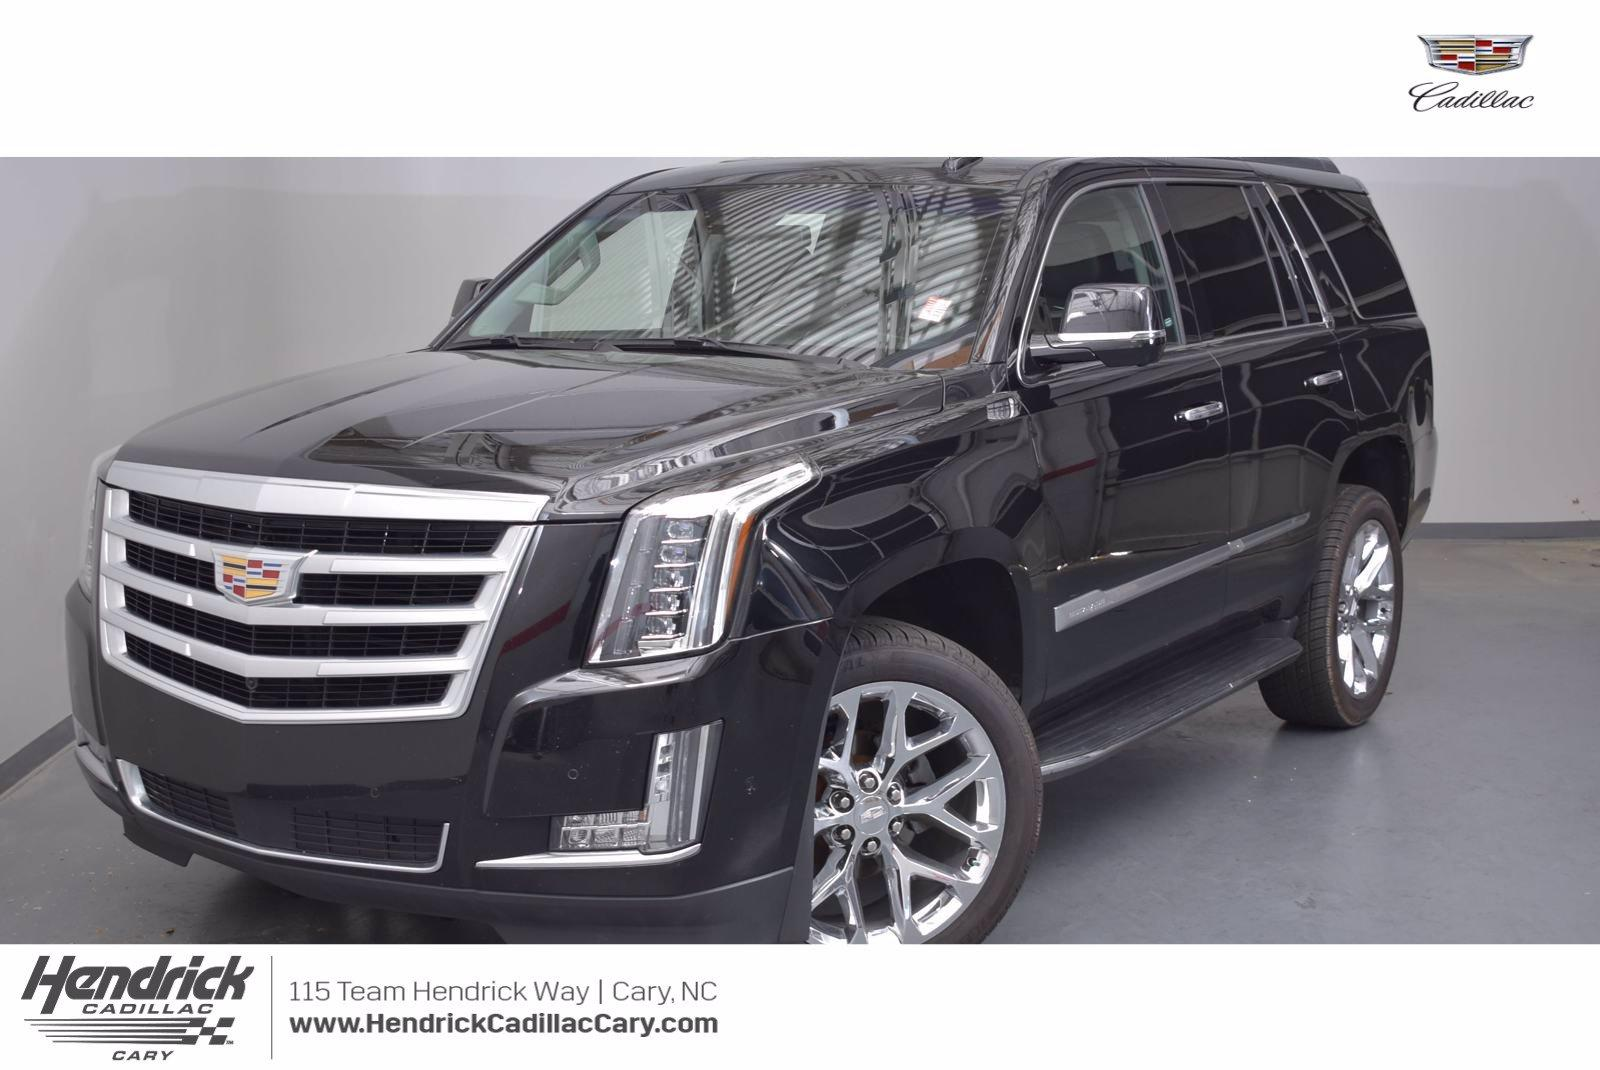 2018 Cadillac Escalade Vehicle Photo in Cary, NC 27511